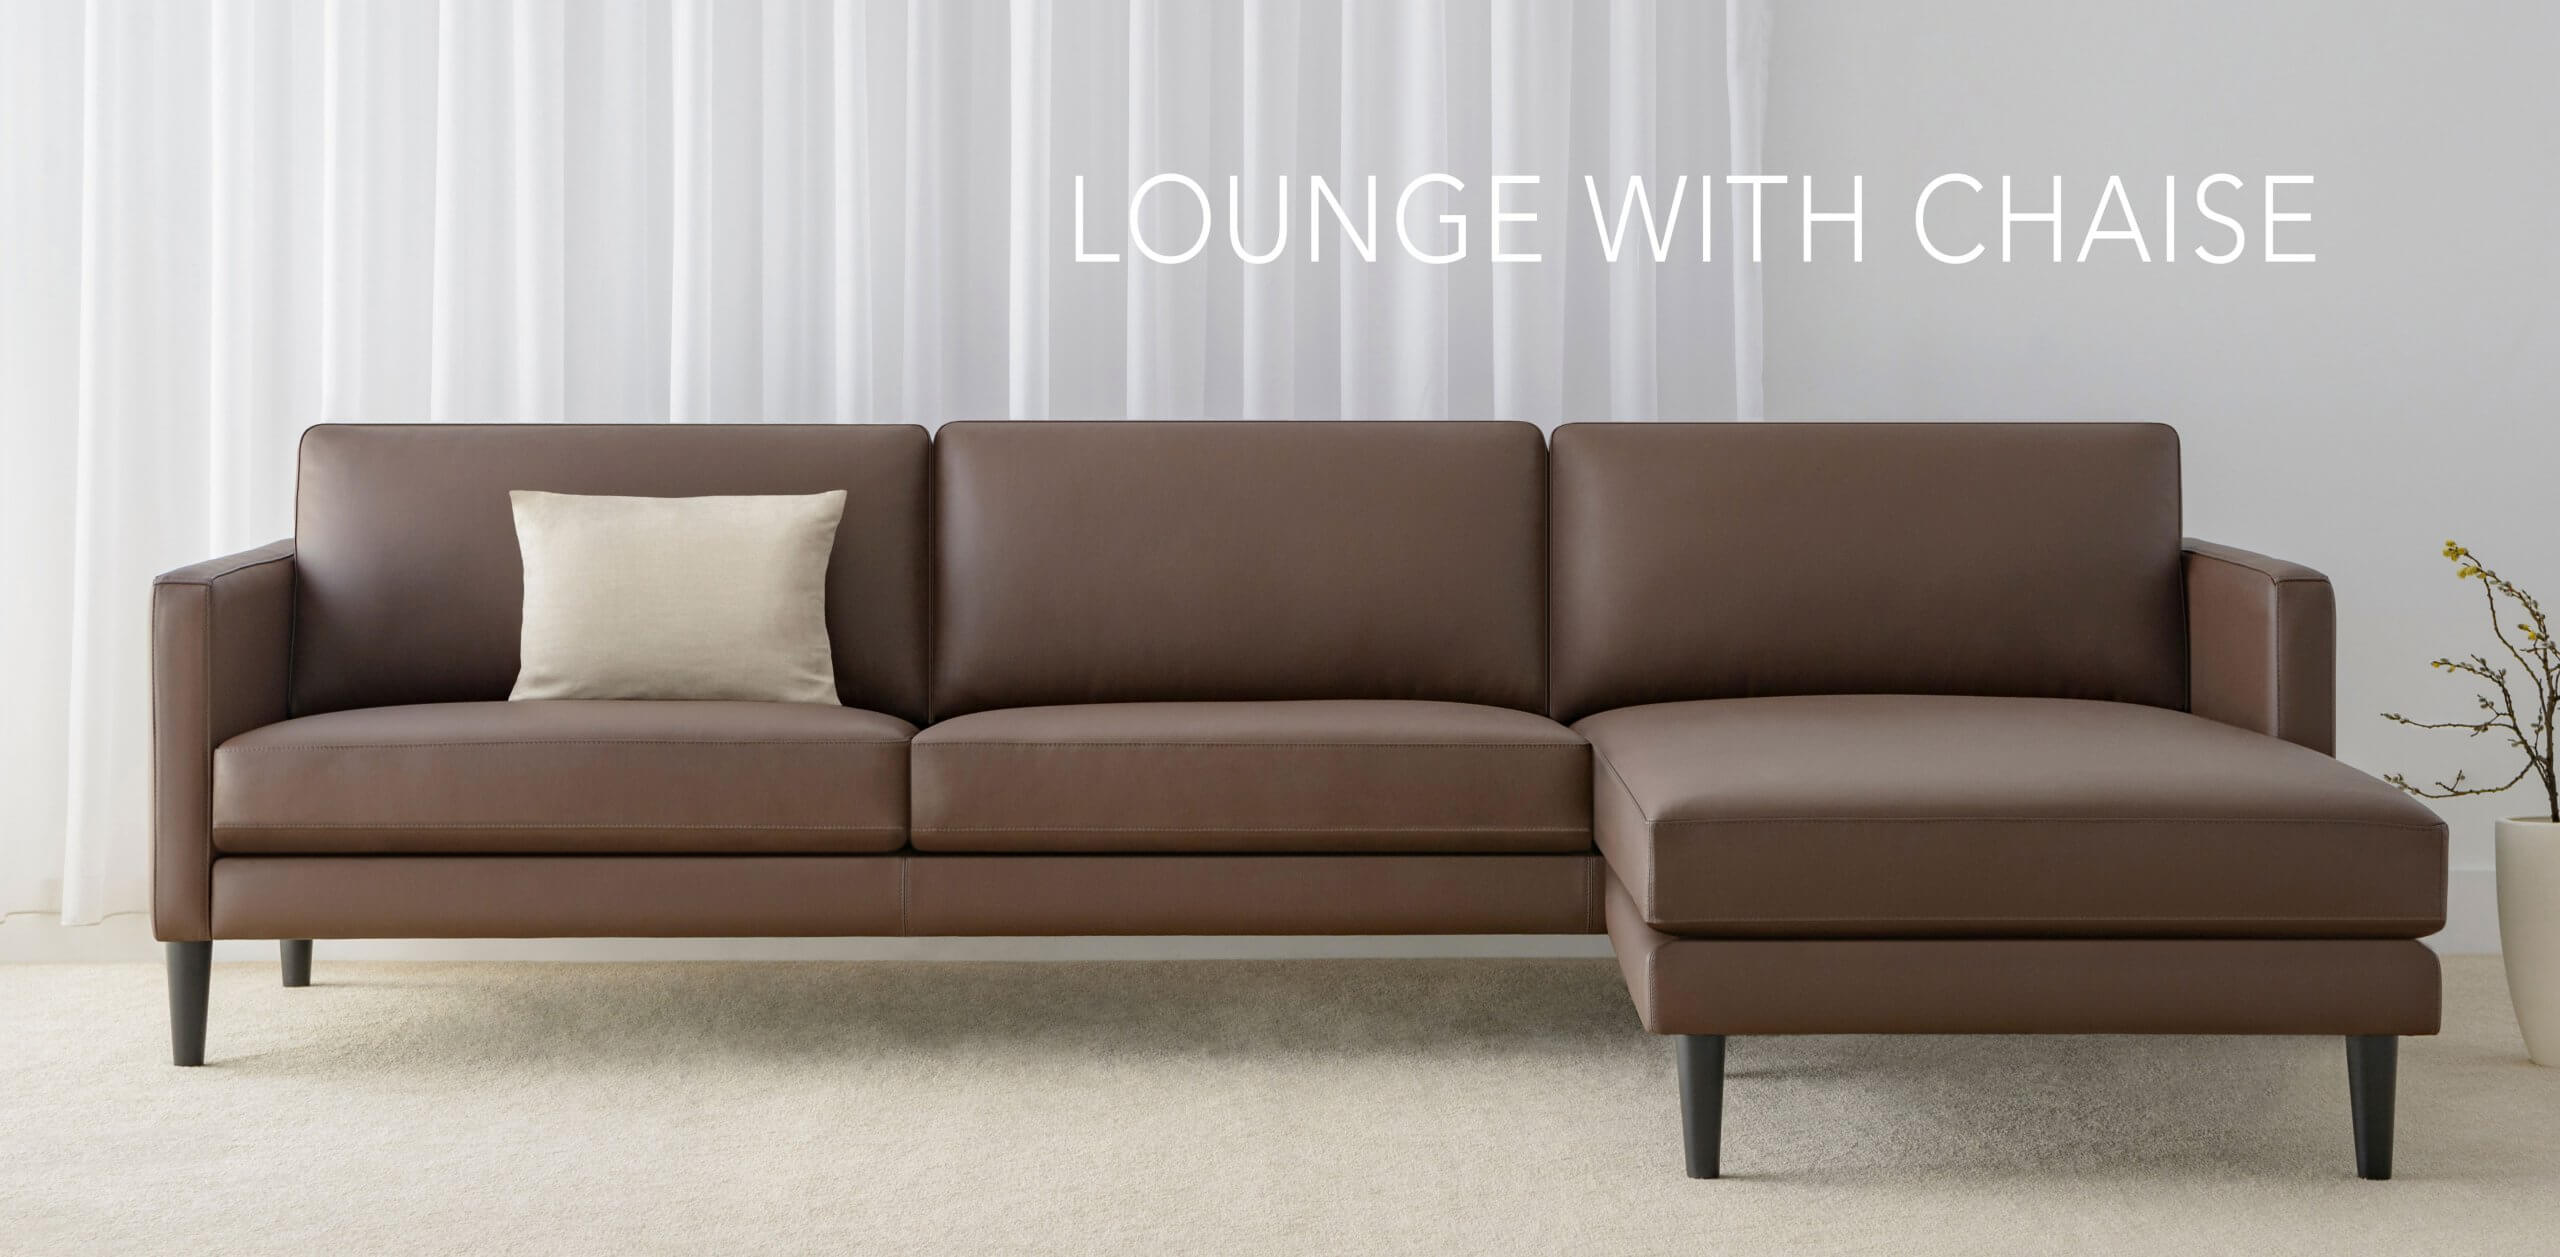 4 seater leather lounge with chaise and low back cushions on rounded timber legs